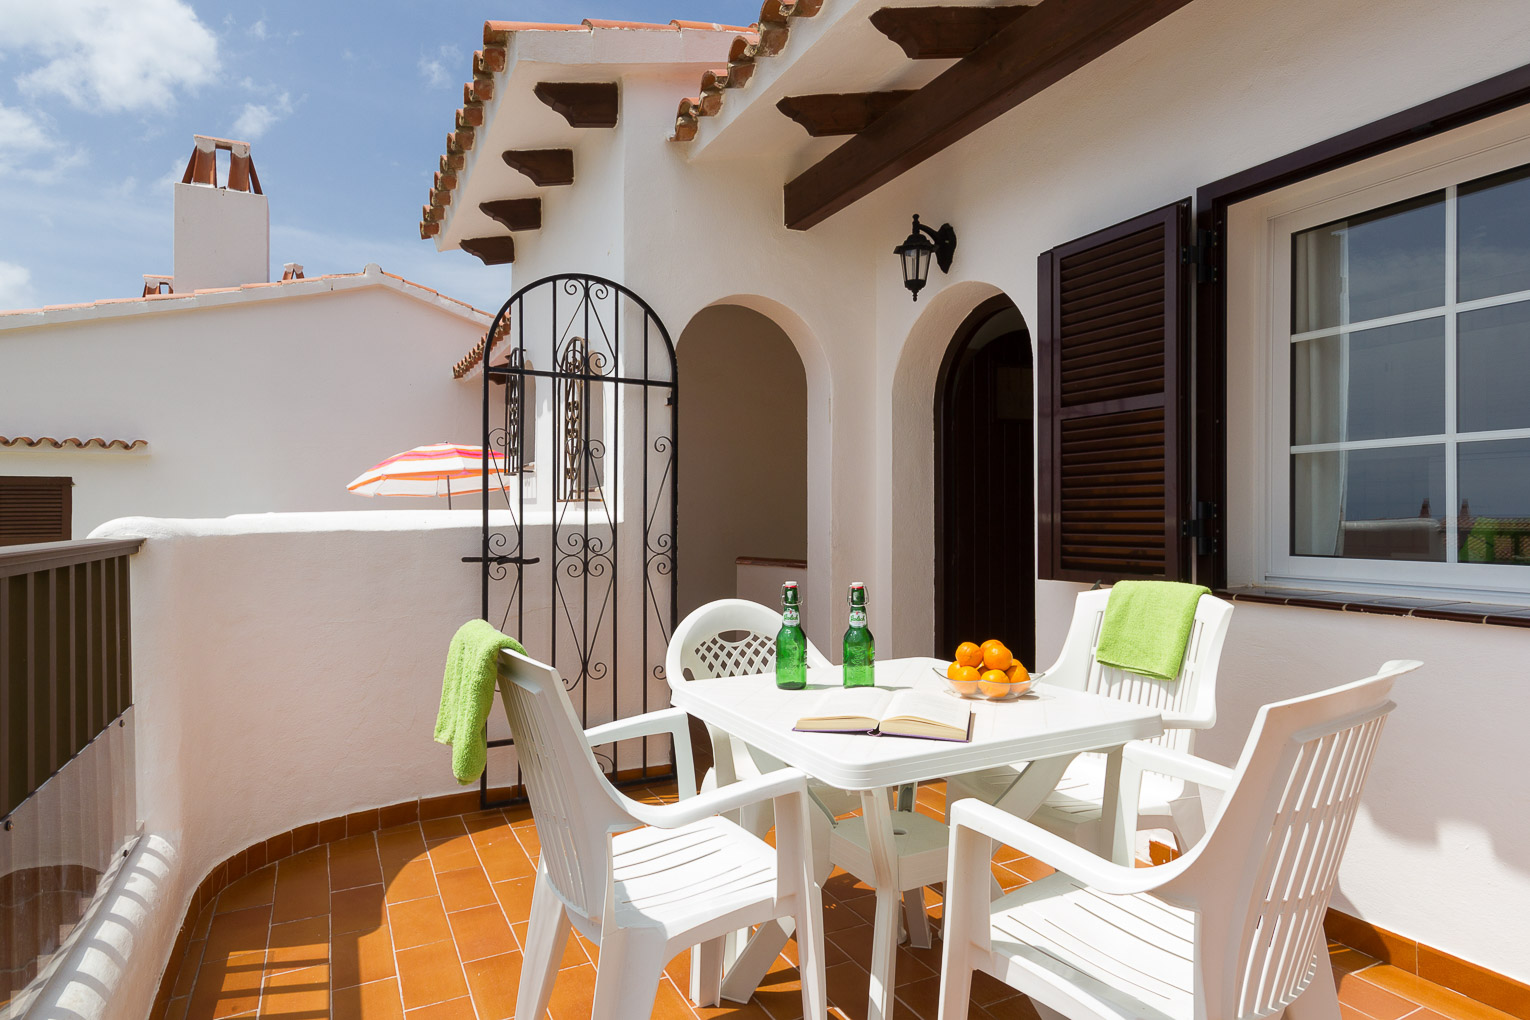 Son Bou Playa Apartments (2 bedroom) Picture 25